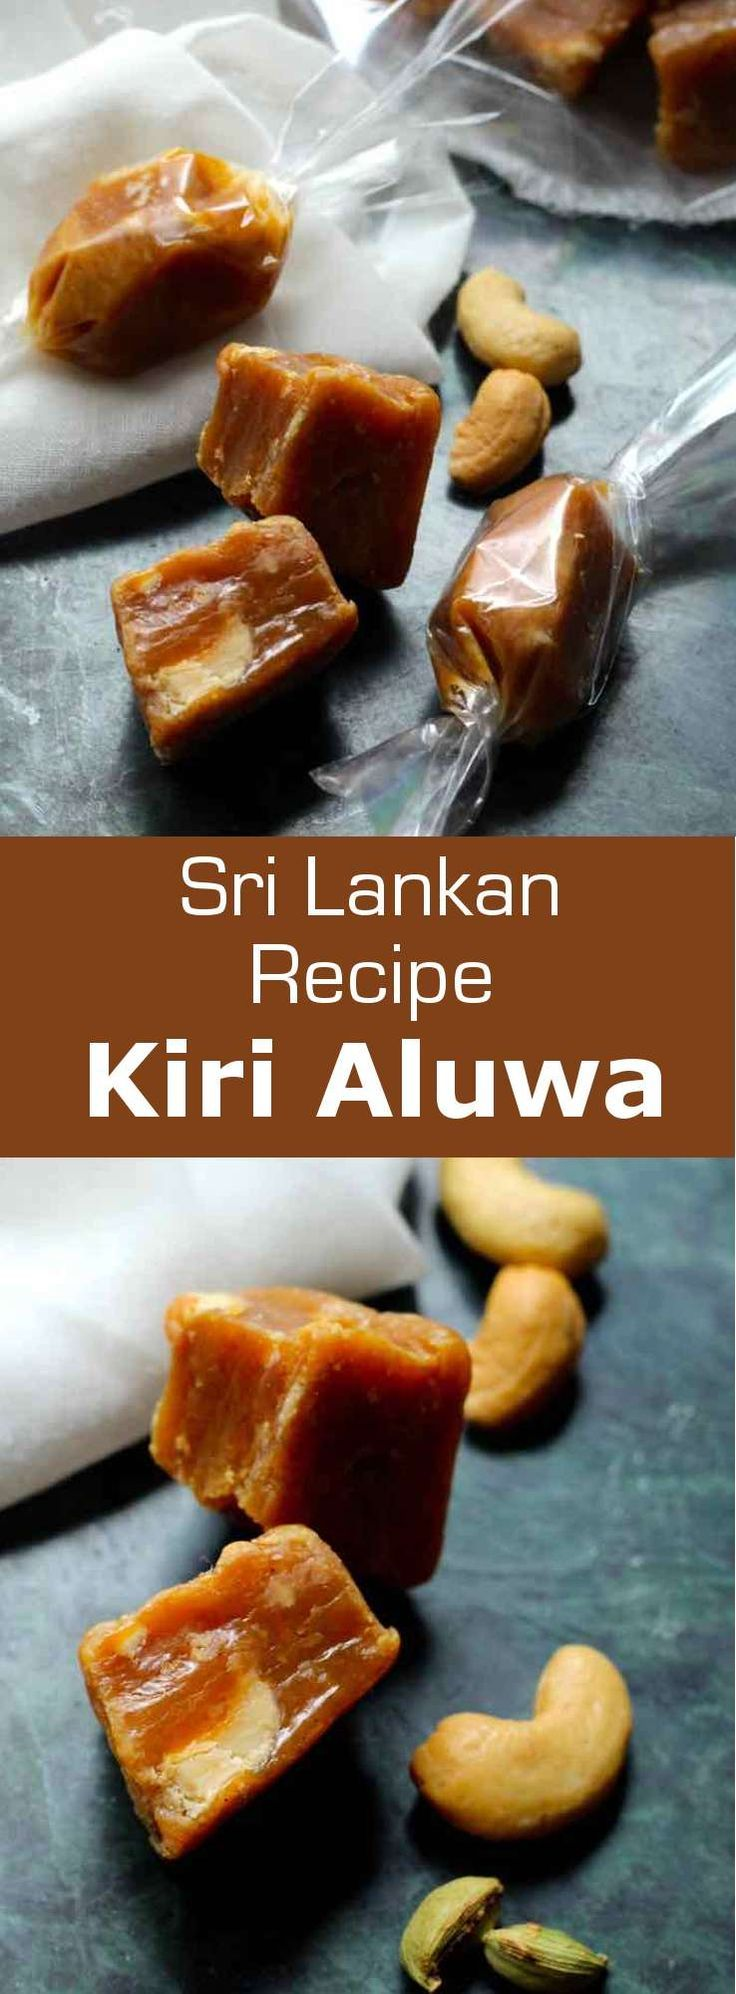 Kiri Aluwa  Milk Toffee Kiri aluwa (milk toffee or kiri toffee) is a traditional recipe of delicious cardamom flavored soft toffee with crunchy cashew nuts that is very popular in Sri